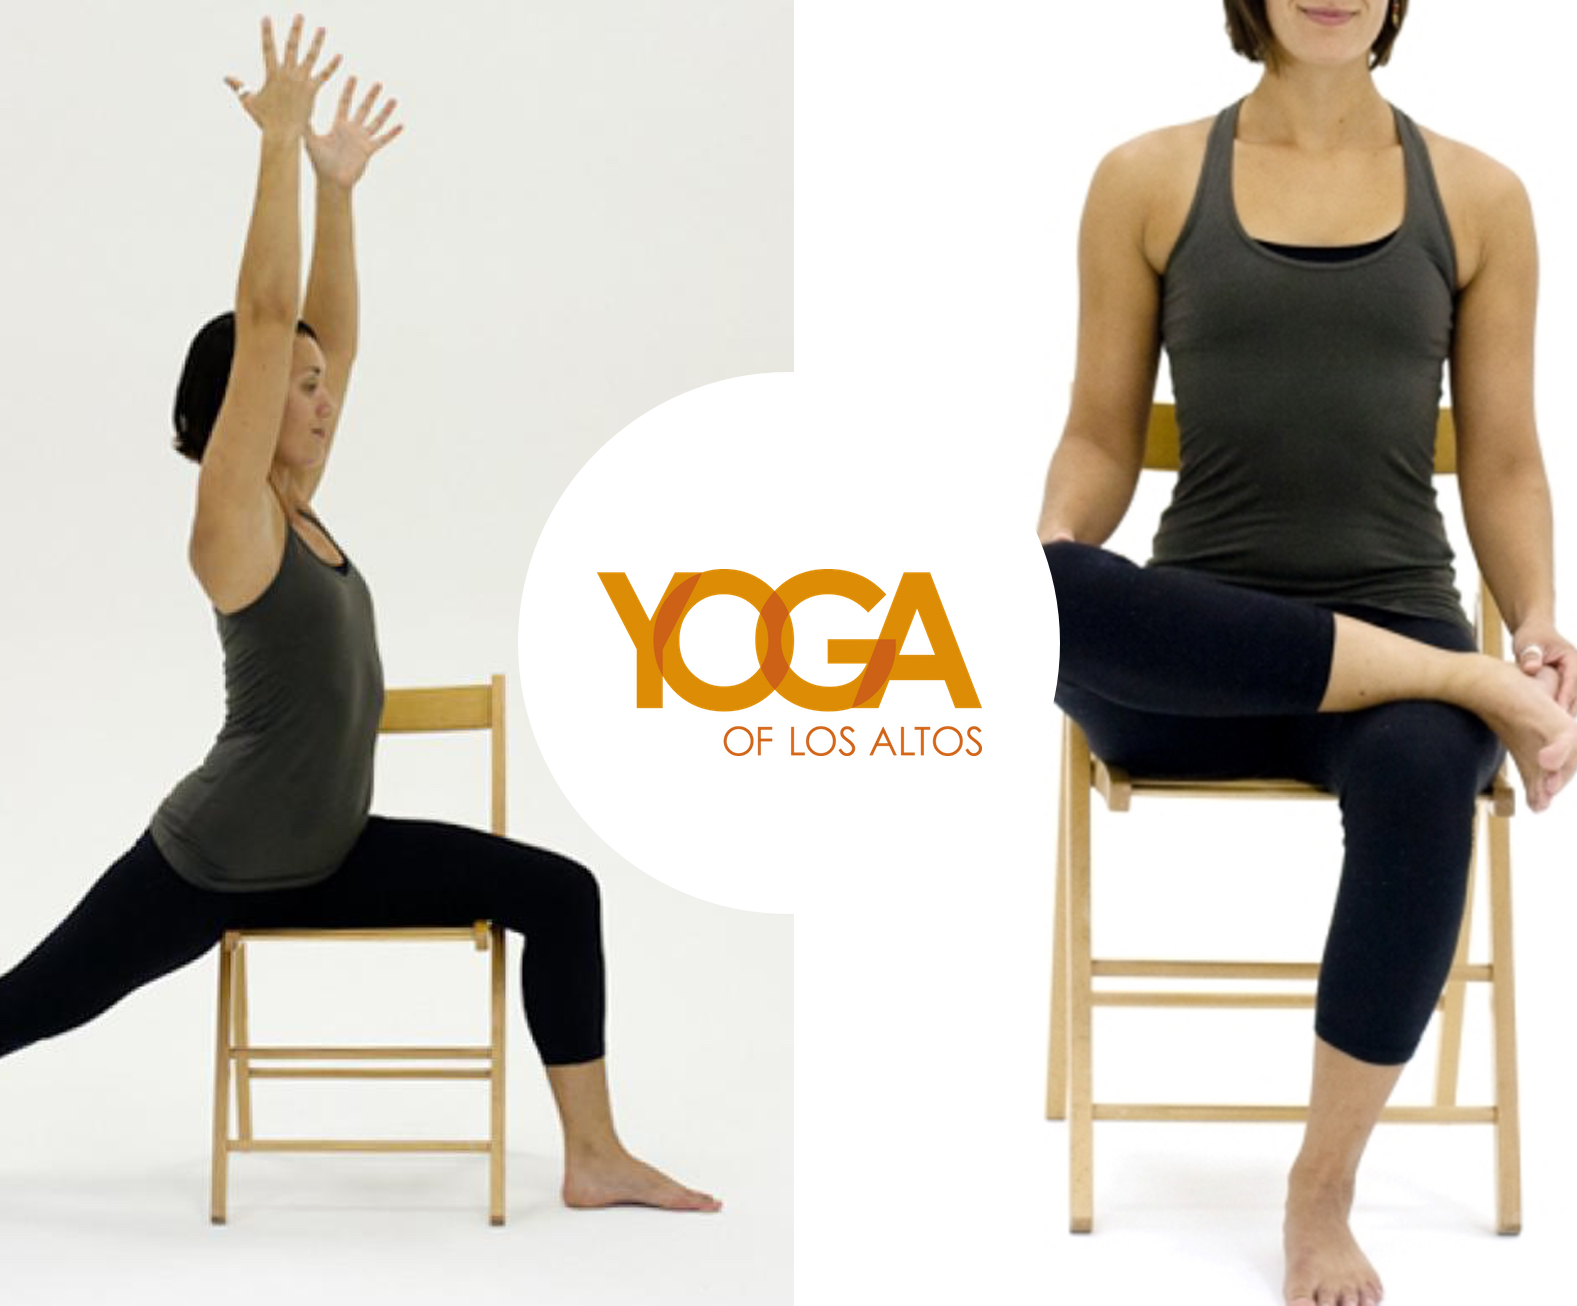 Yoga of Los Altos - Chair yoga with Cheryl Anderson